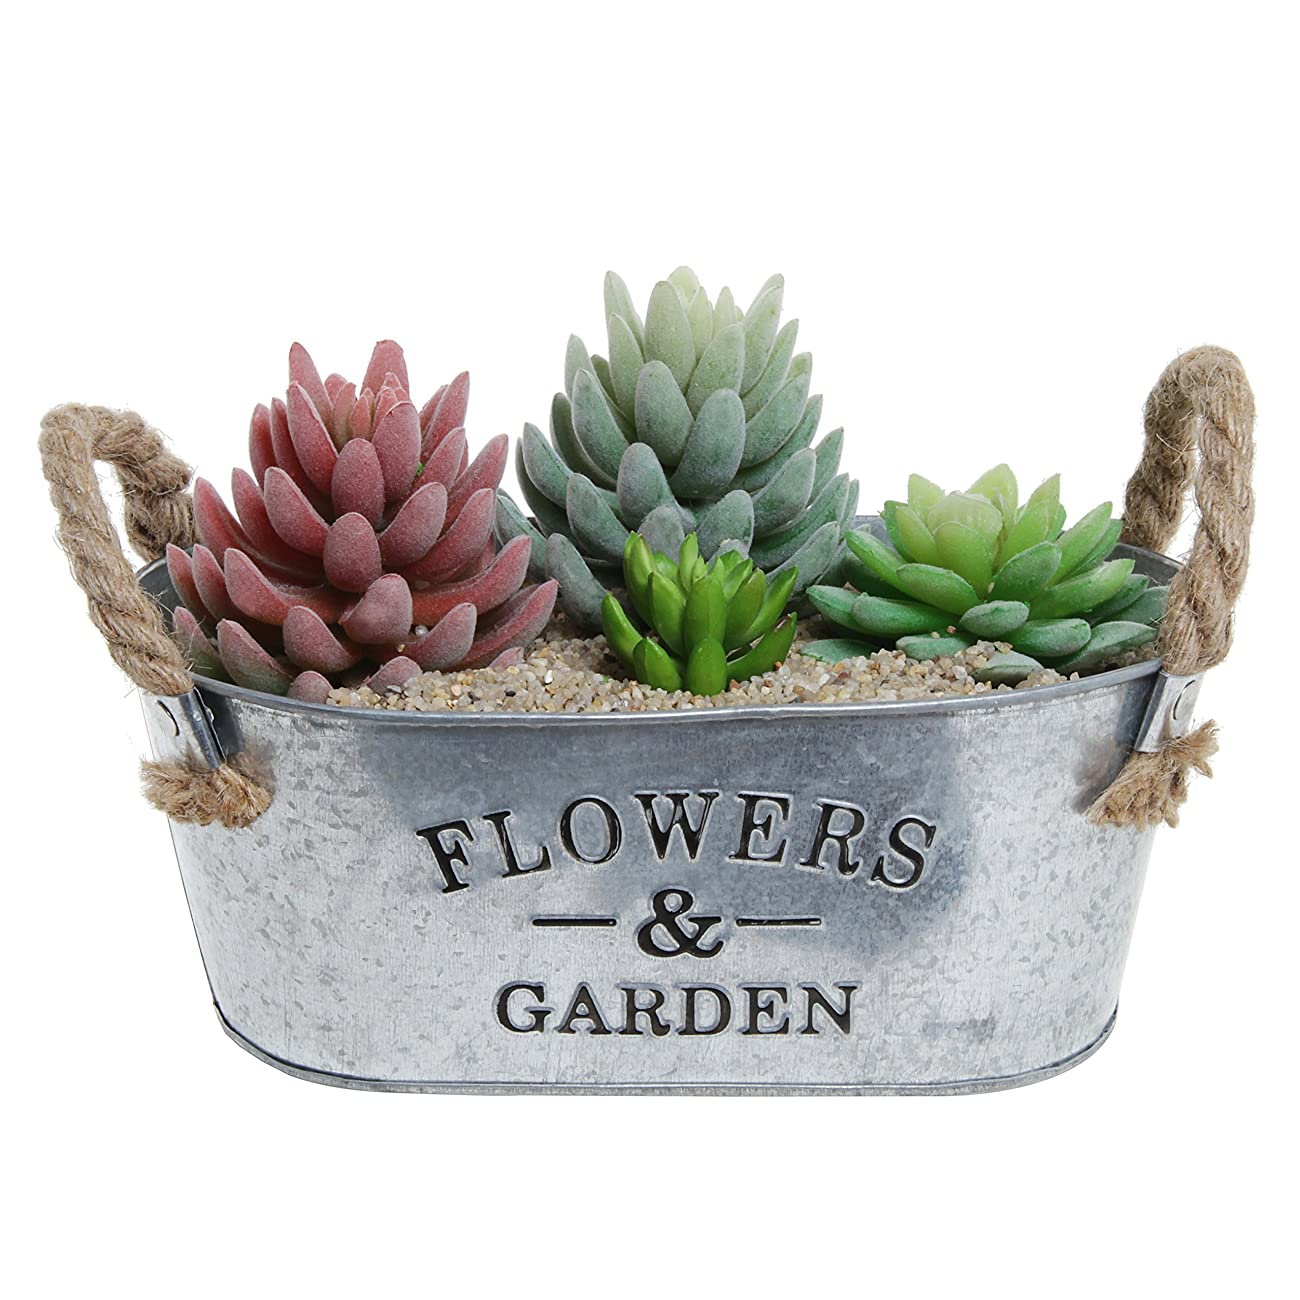 Rustic 'Flowers & Garden' Bucket Design Small Metal Succulent Plant Container w/ Twine Handles - MyGift® 0